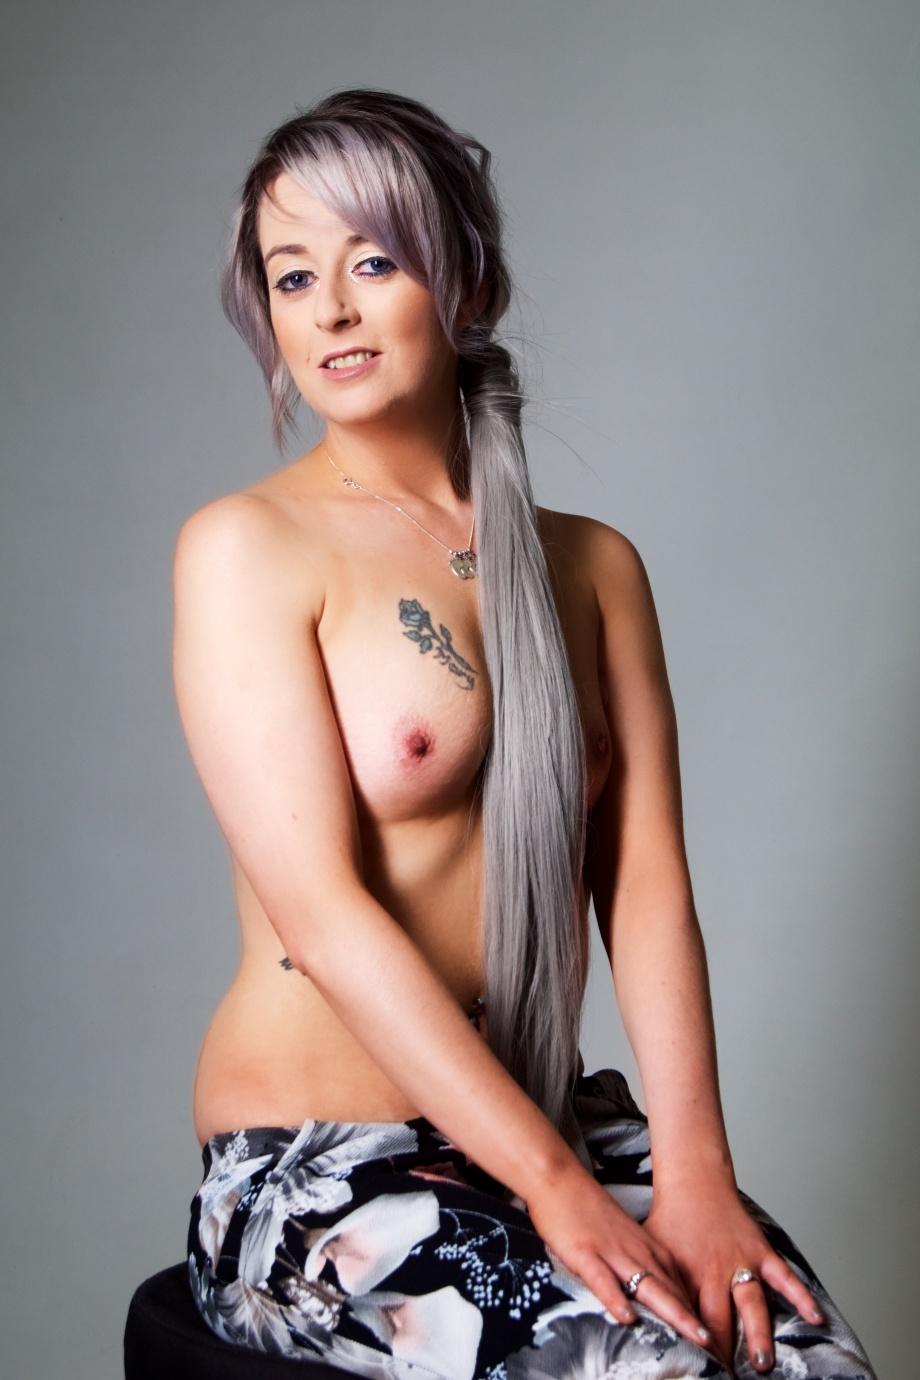 Cliona B, Glamour, Barbarella Band, photoshoot, studio, topless